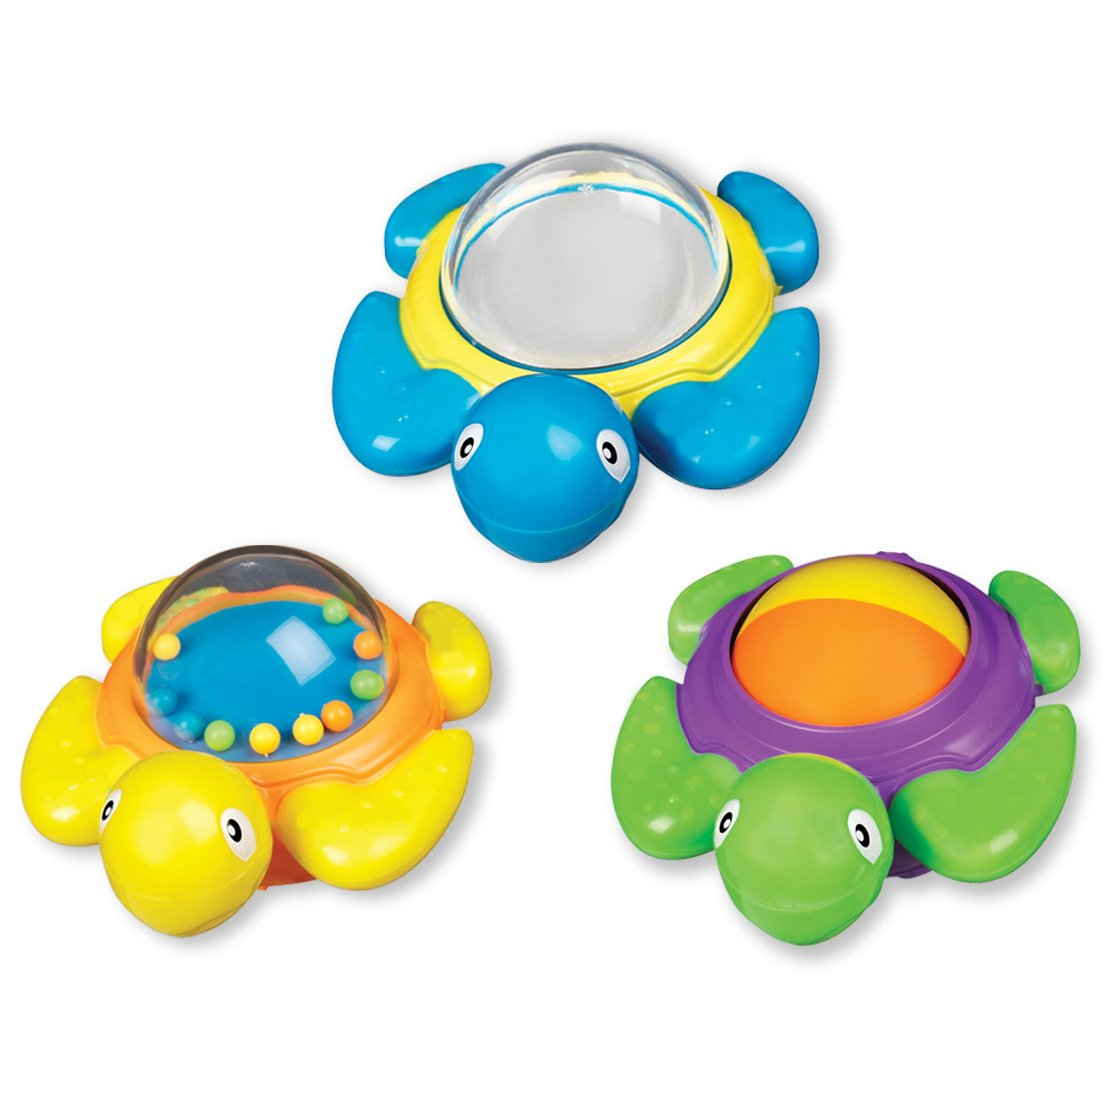 Amazon.com : Munchkin Baby Bath Toy, Turtles : Bathtub Toys : Baby